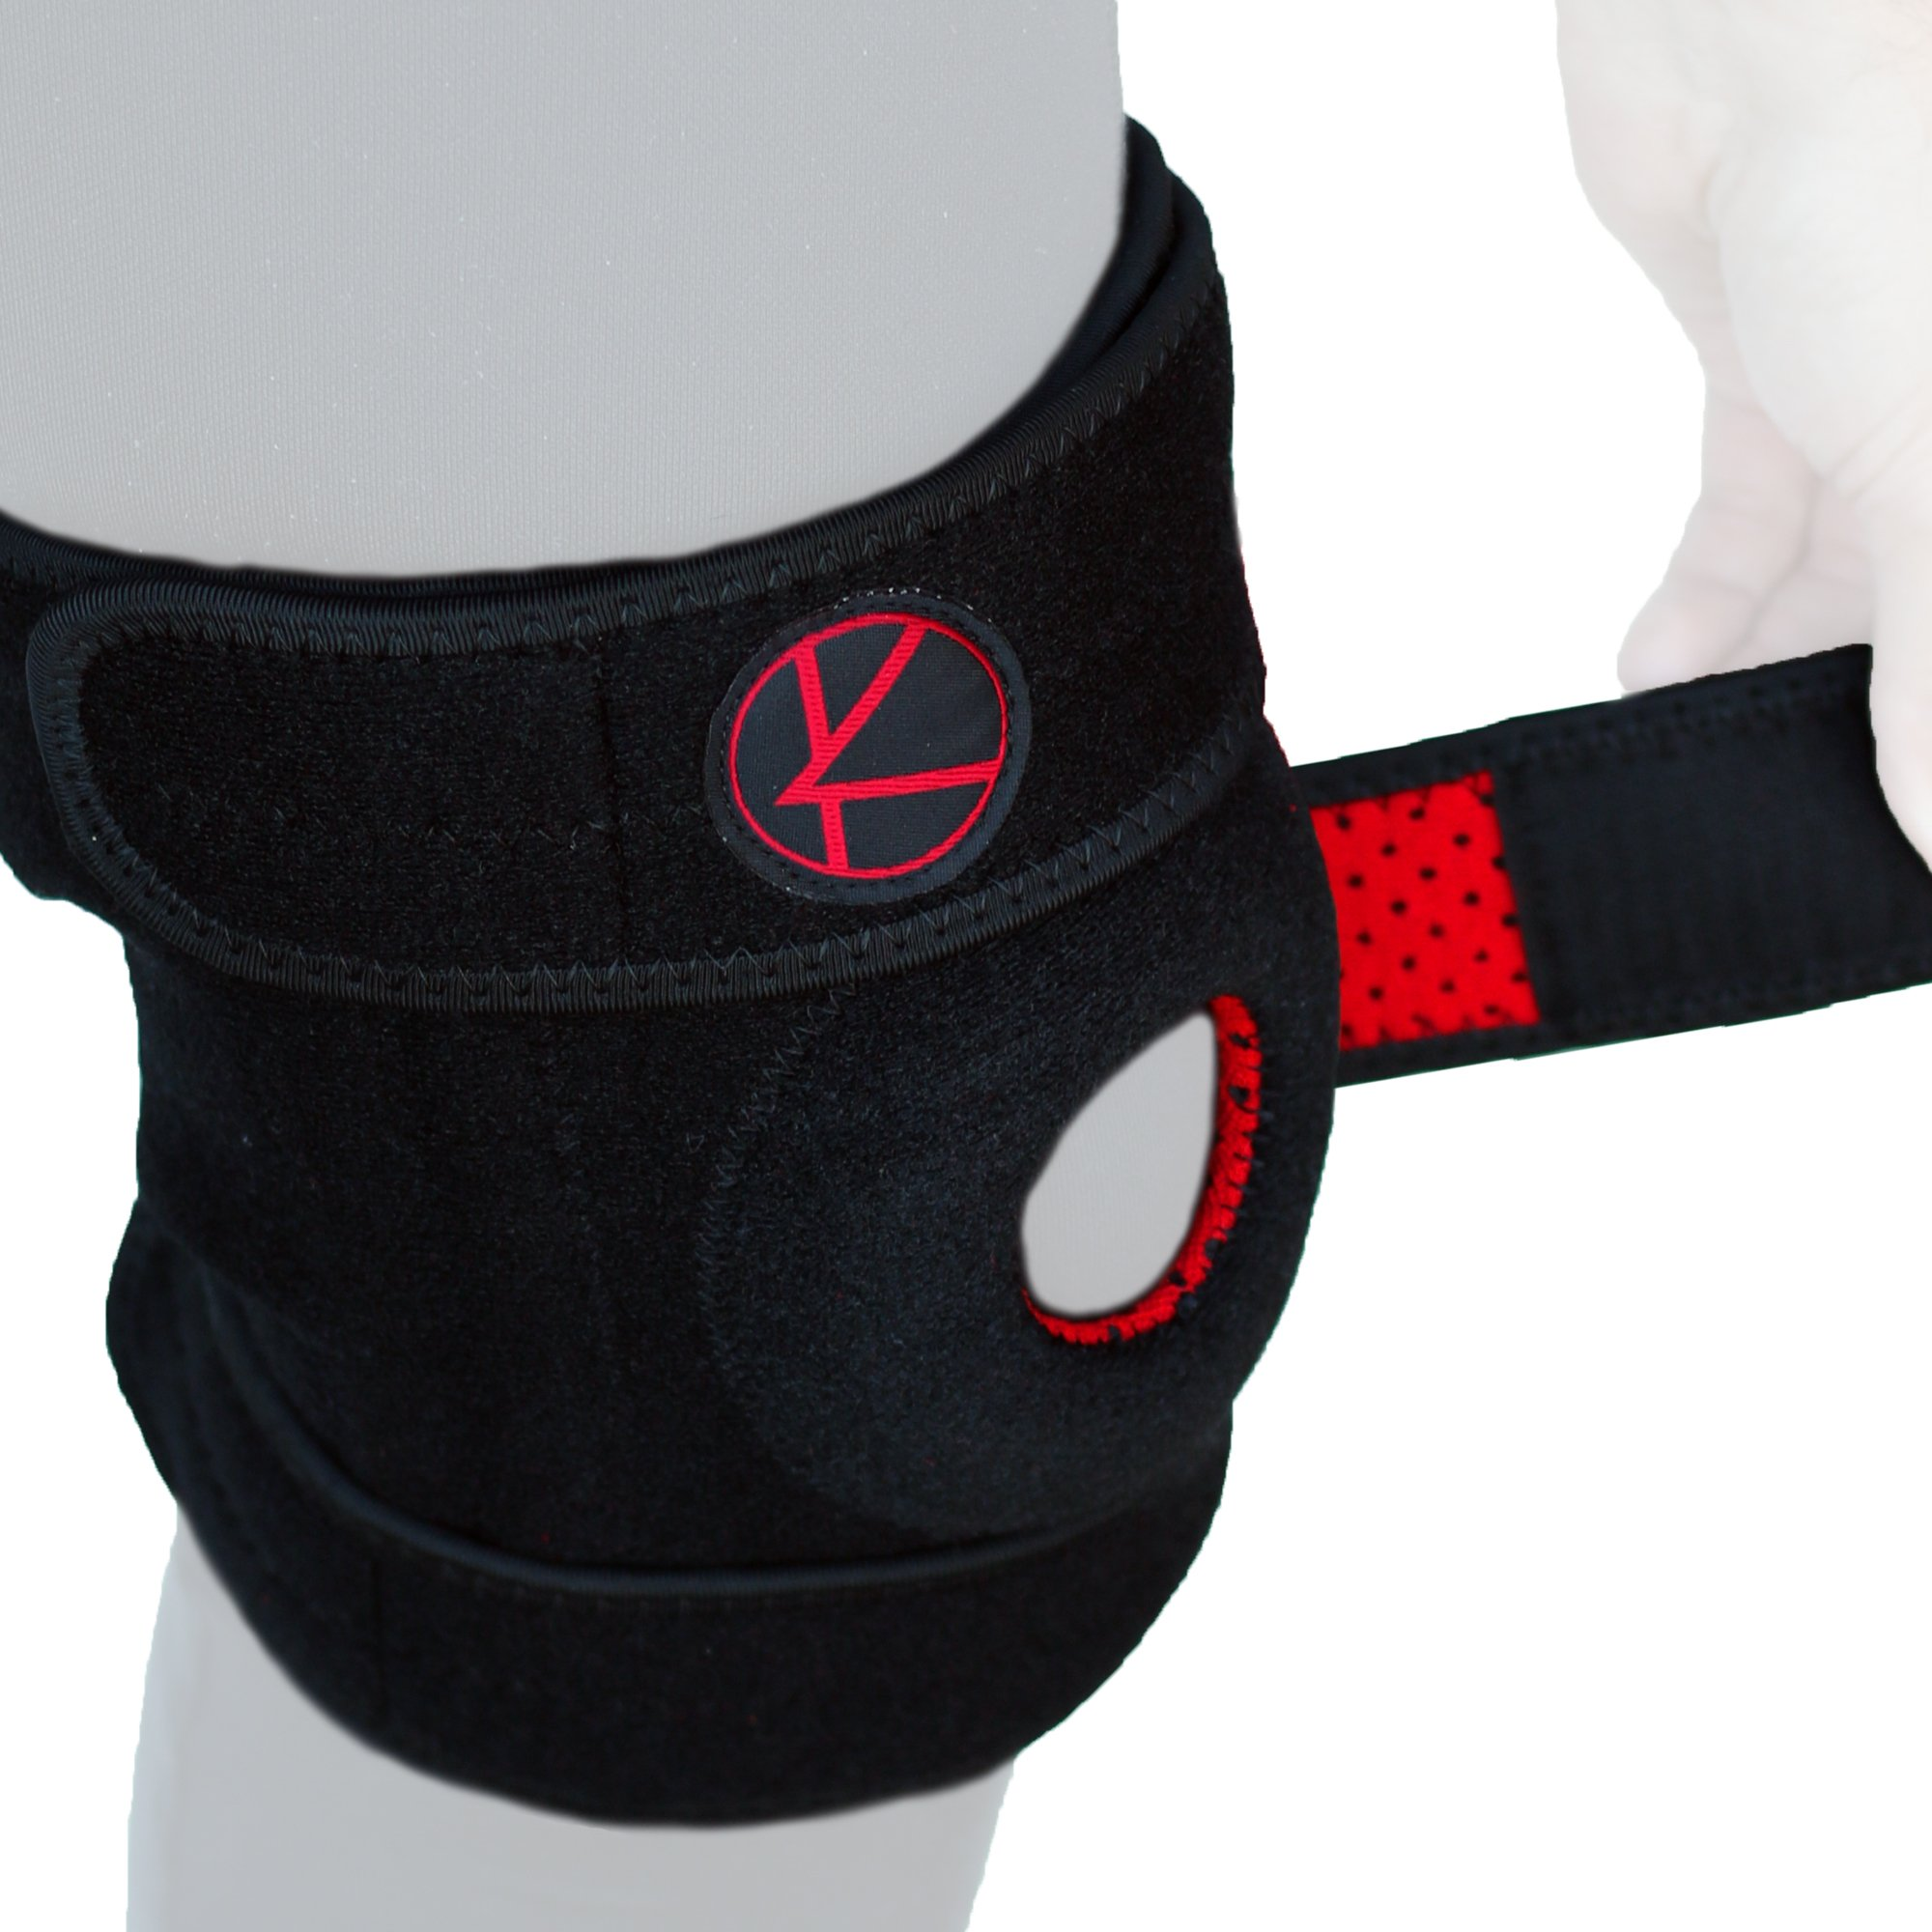 Adjustable Knee Brace Support for Arthritis, ACL, MCL, LCL, Sports Exercise, Meniscus Tear, Injury Recovery, Pain Relief, Walking – Open Patella Neoprene Stabilizer Wrap for Women, Men, Kids(Size 2)